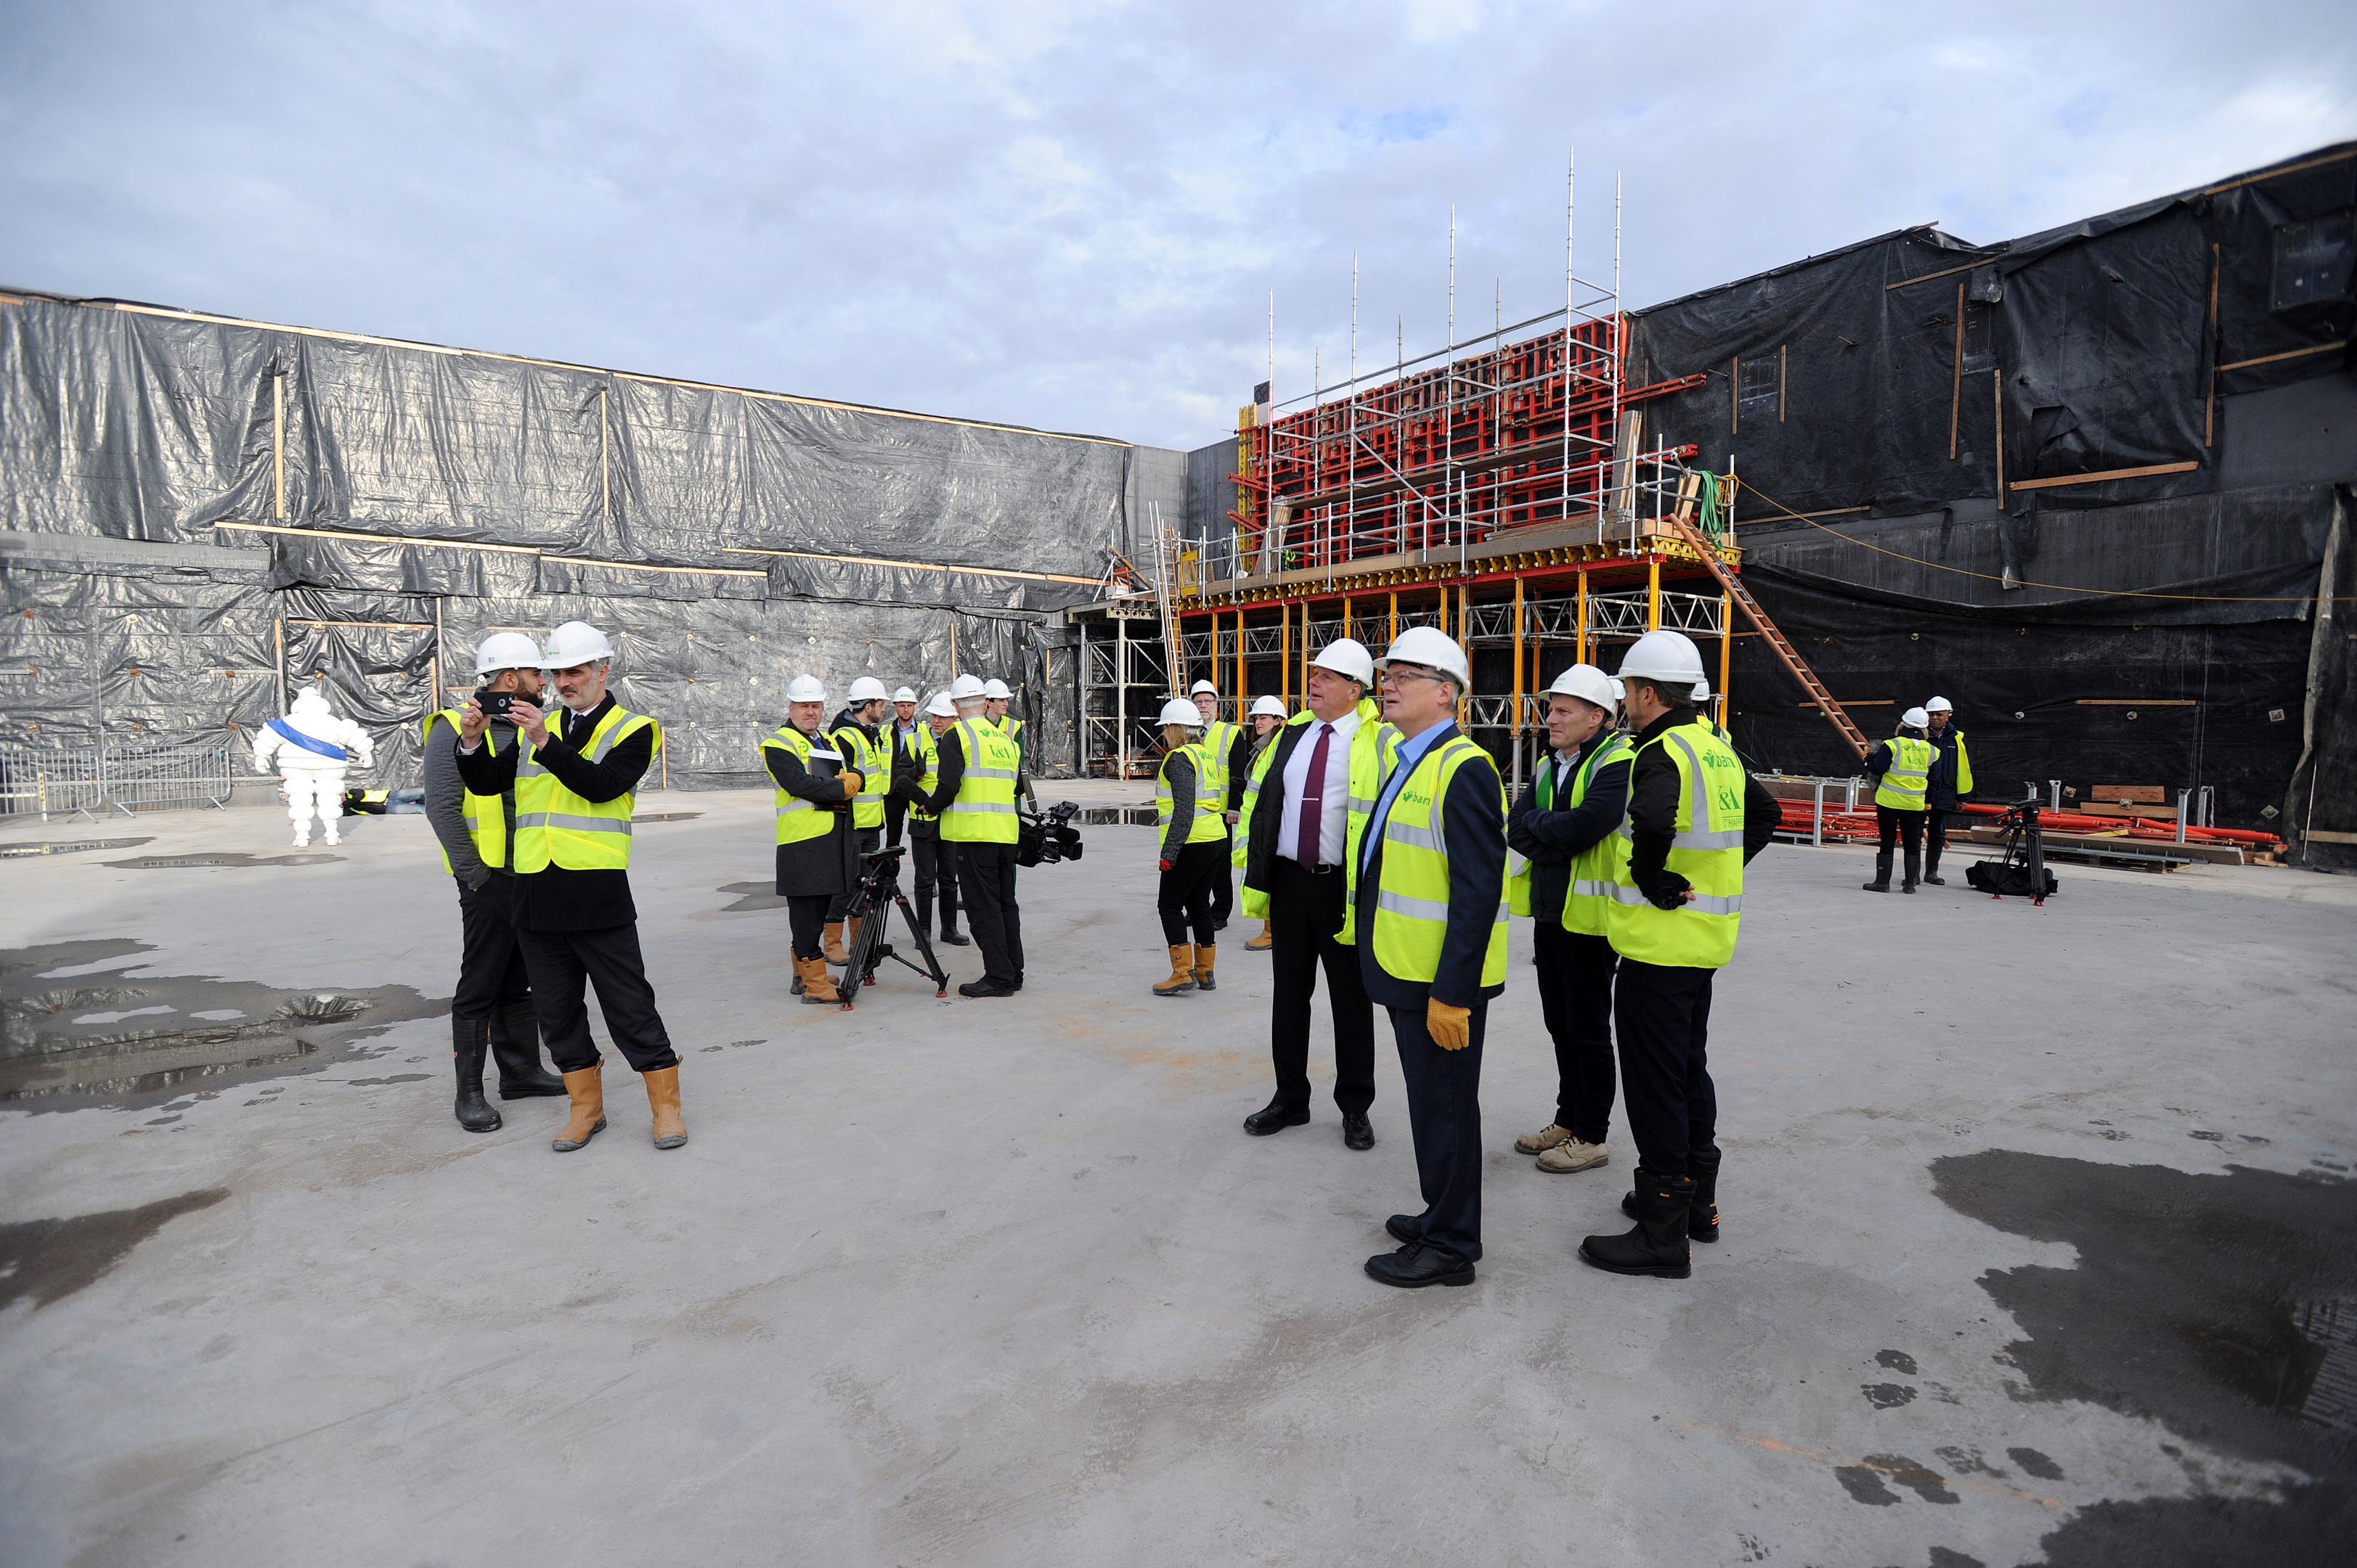 Officials and members of the press taking a tour of the recently completed Michelin Design Gallery, at the V&A Museum construction site.